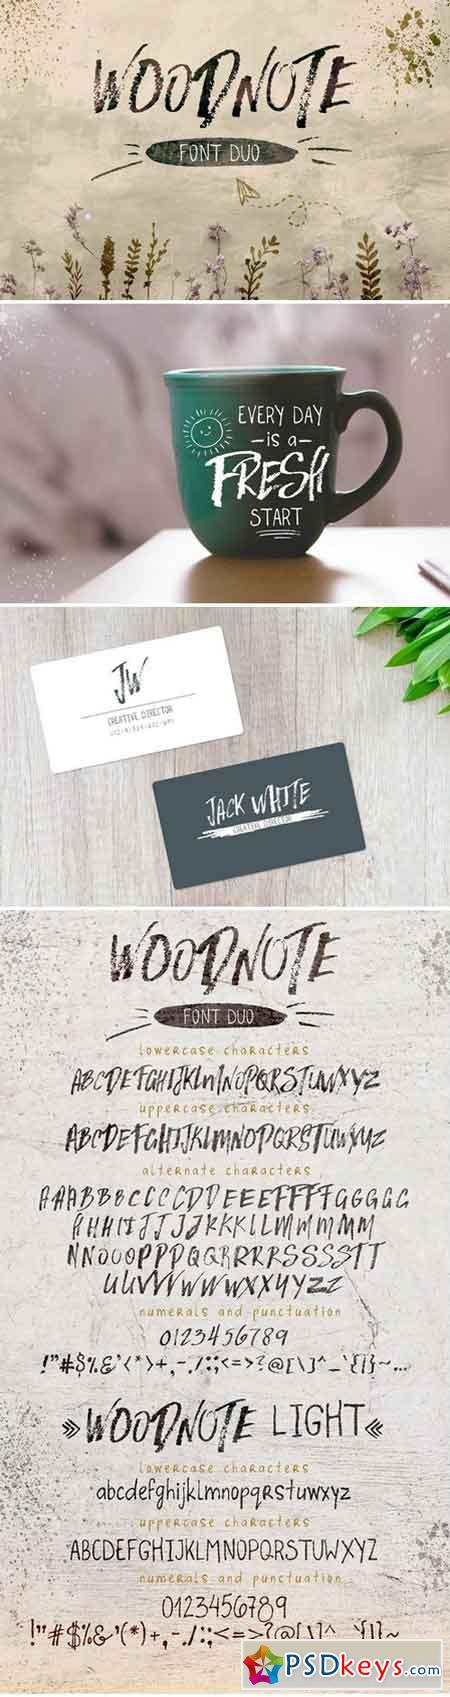 Woodnote Font Duo 2255515